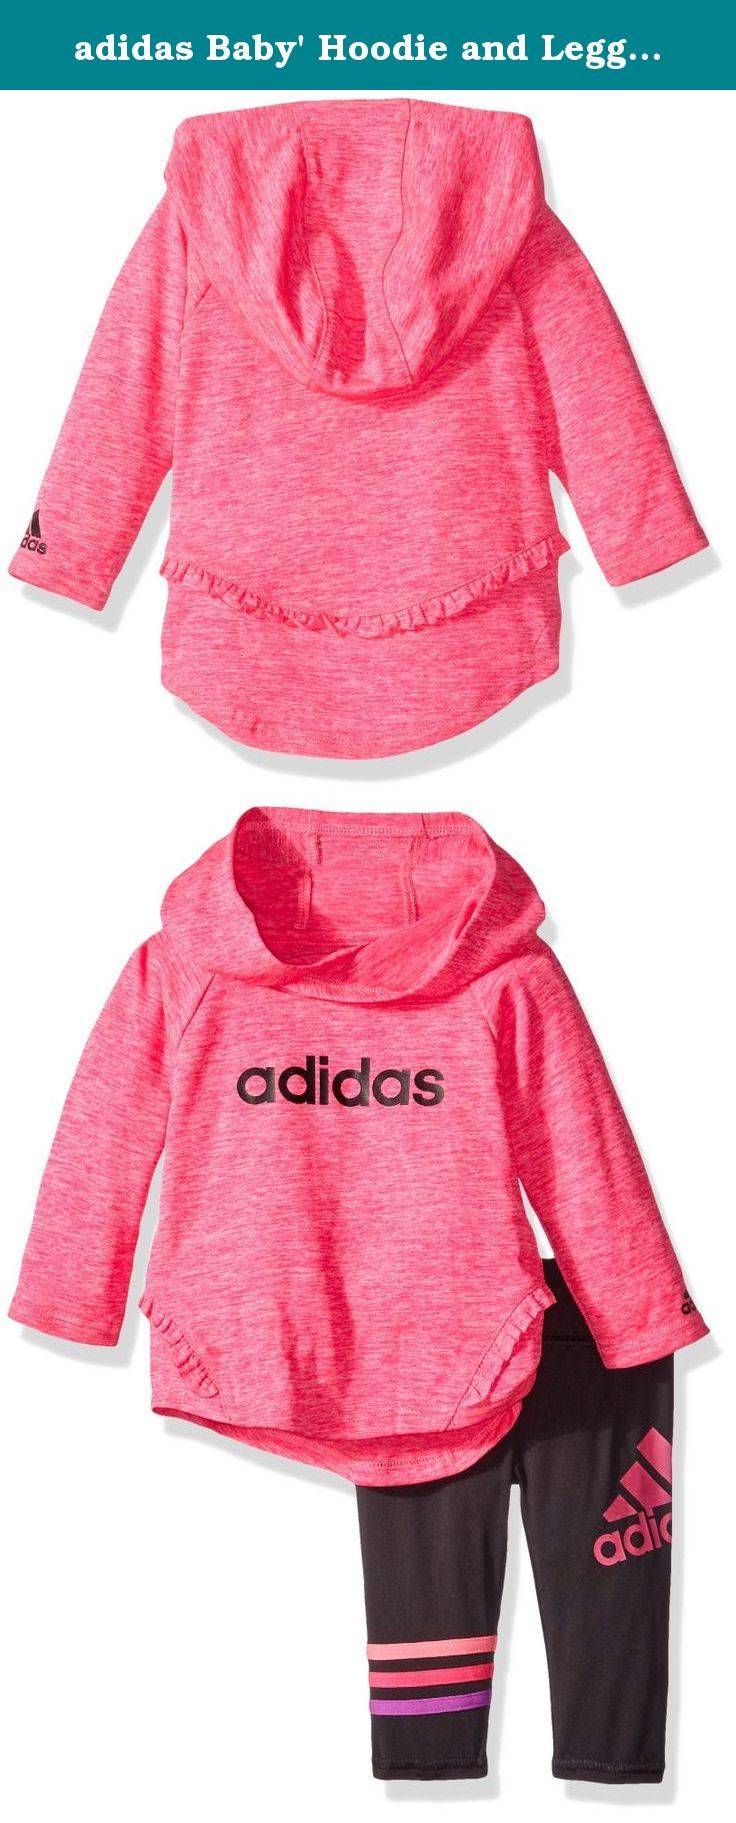 adidas Baby' Hoodie and Legging Set, Shock Pink Heather, 12 Months. The hooded top features angled front seams with ruffle and drop-tail back hem with curved ruffle seam. Black foil screen printed linear Adidas on front. Screen-printed Adidas brand mark on left sleeve. Tight with flat waistband. Applied stripes around right leg and wraparound performance logo on upper left leg.